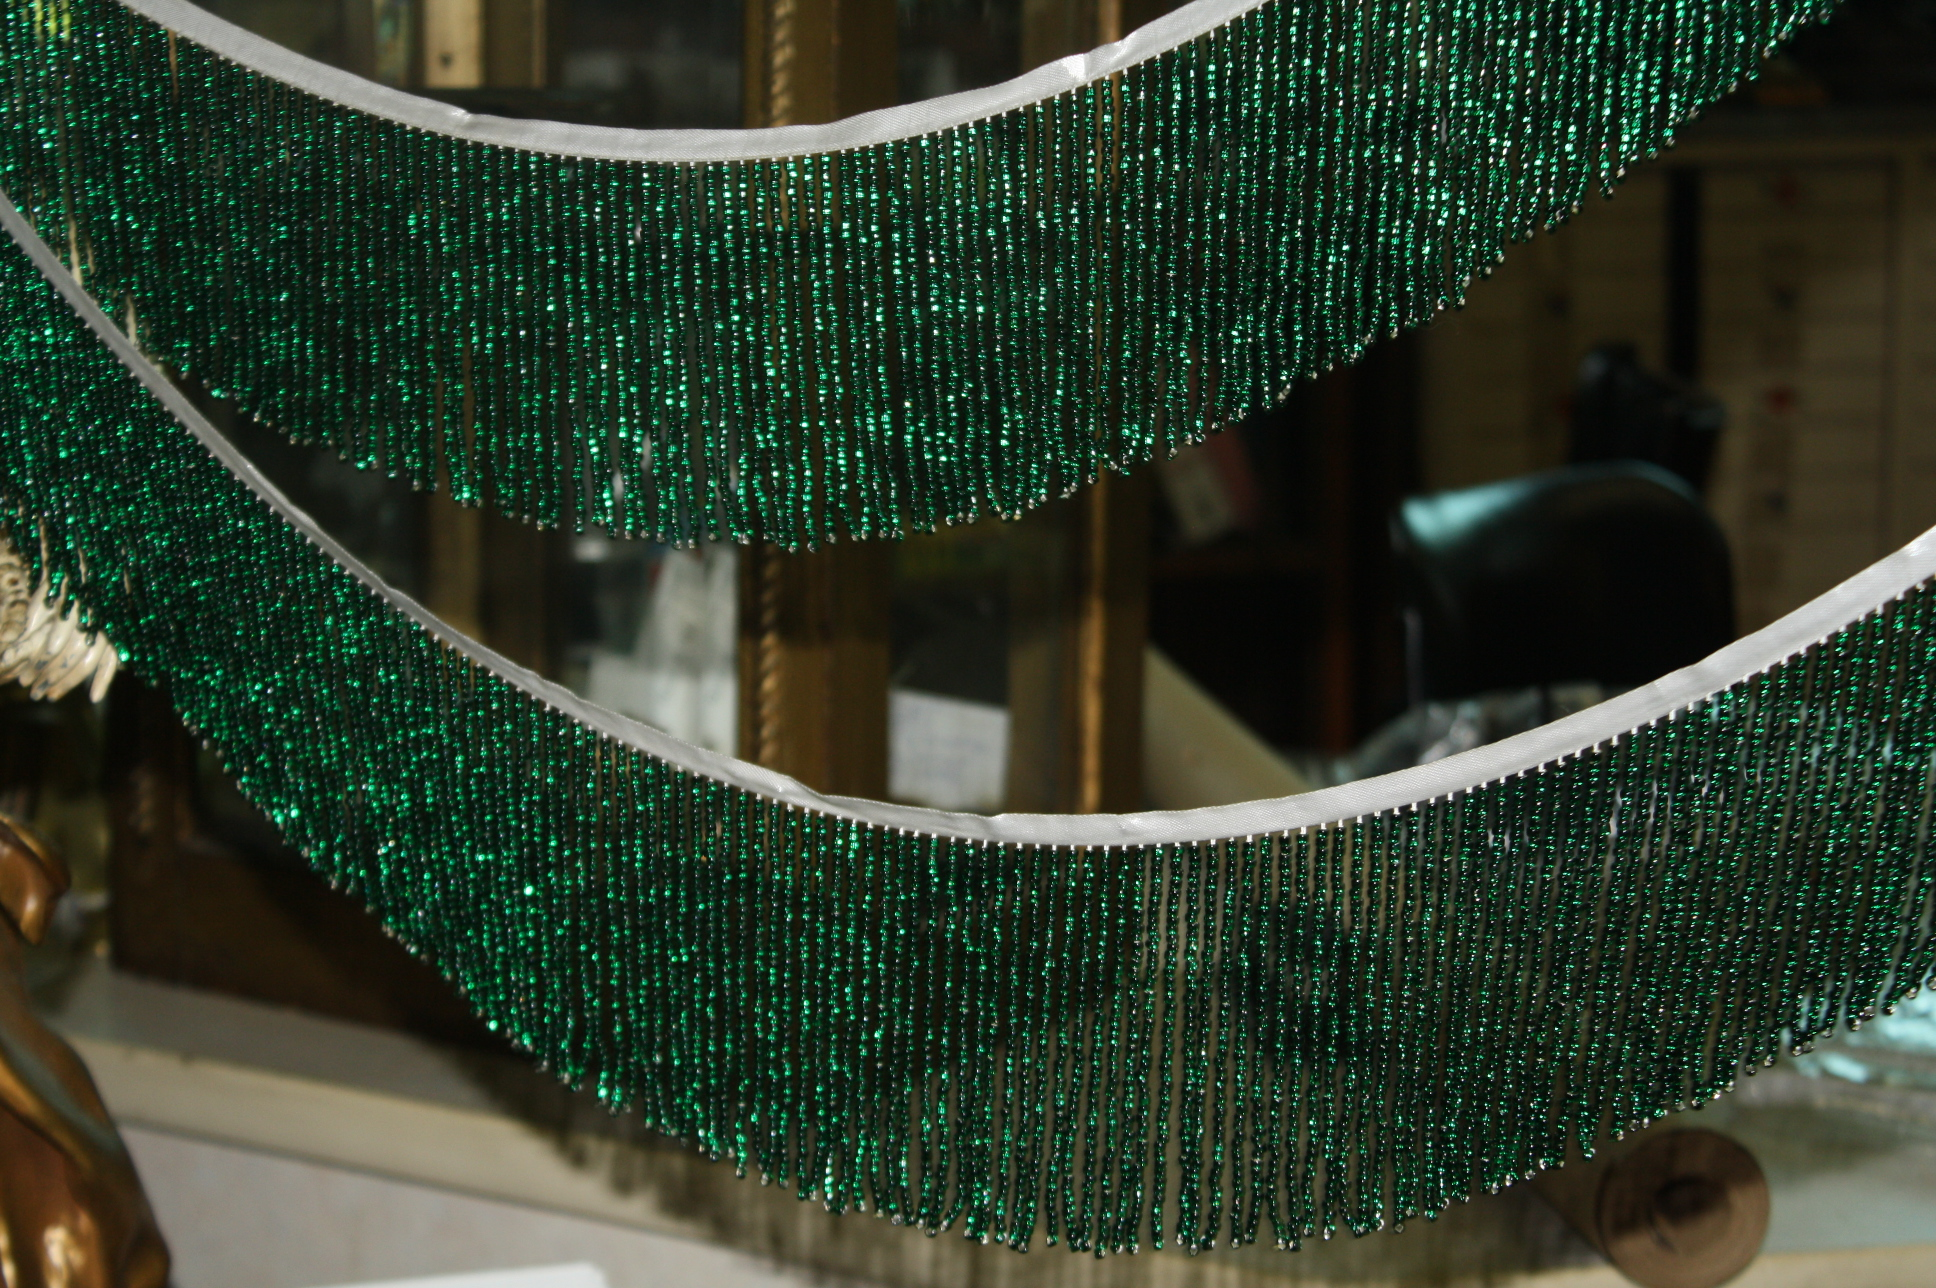 71 italian hand made glass bead lamp shade fringe for sale lamp not included pictured for demonstration only aloadofball Choice Image